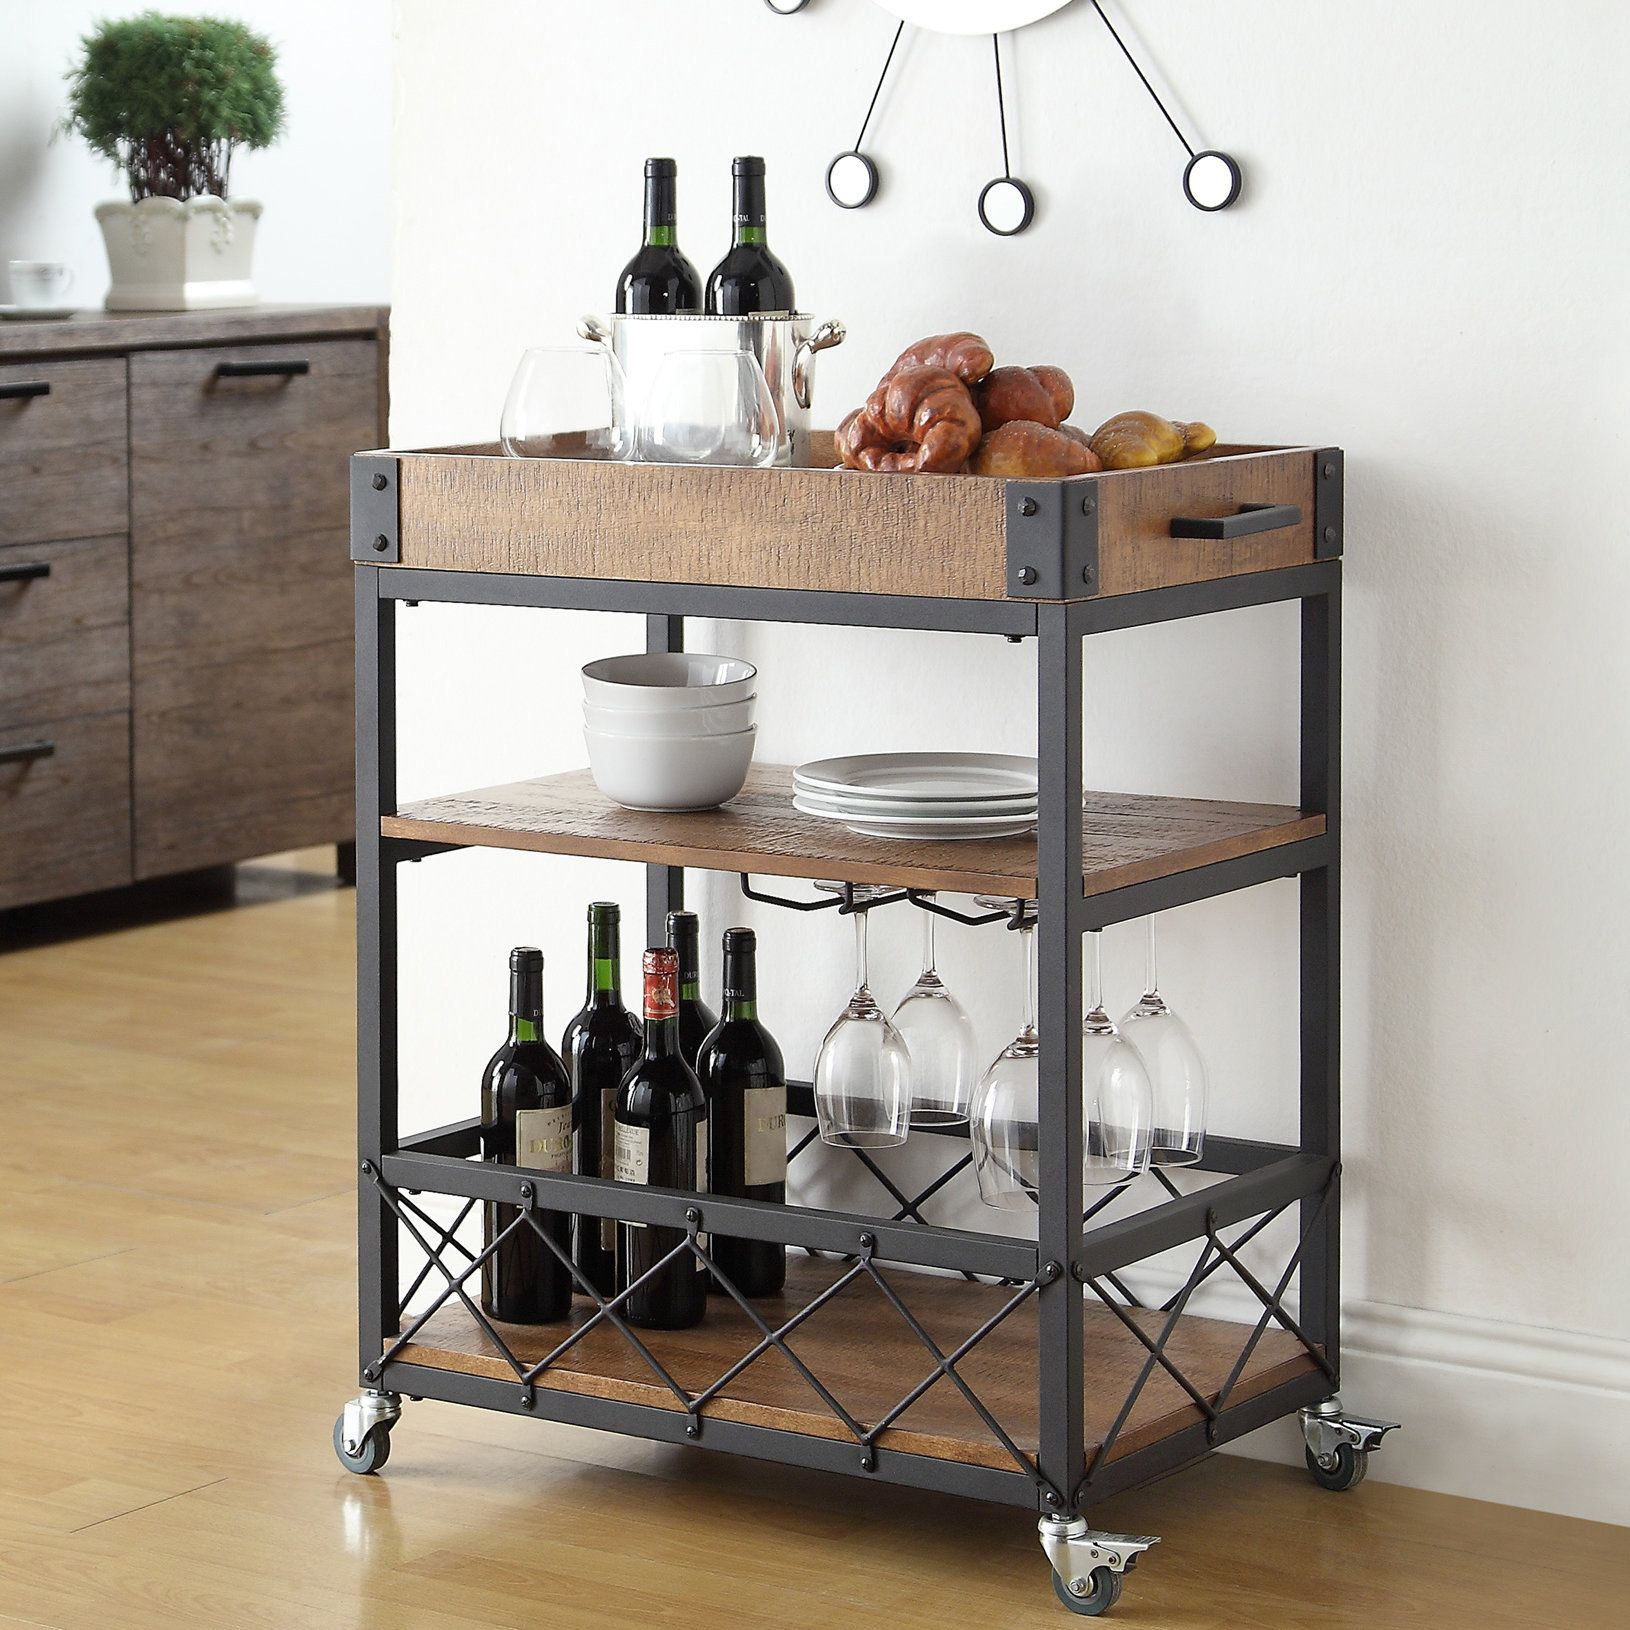 Nithsdale kitchen cart kitchen carts wooden tops and products